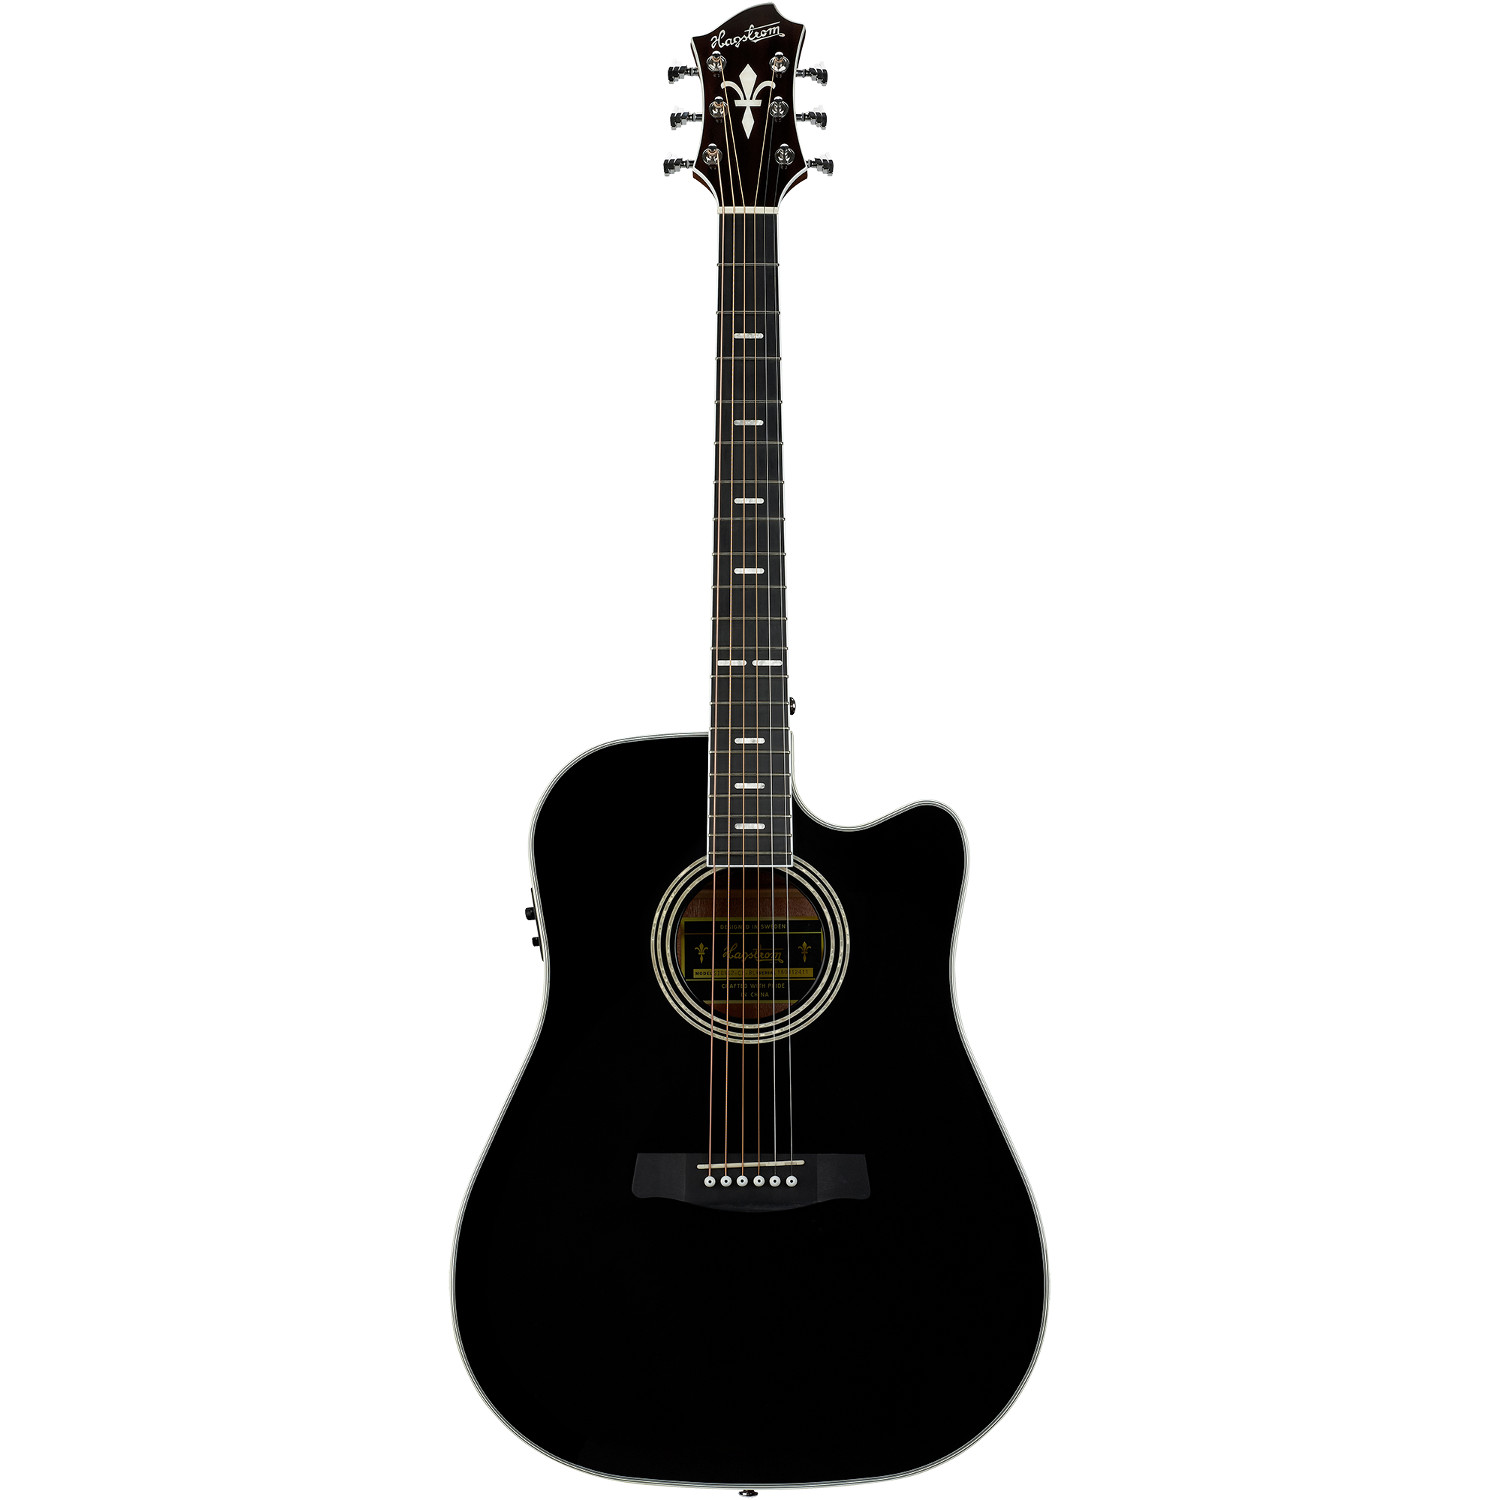 Hagstrom Siljan II Dreadnought CE Black Gloss acoustic steel string guitar